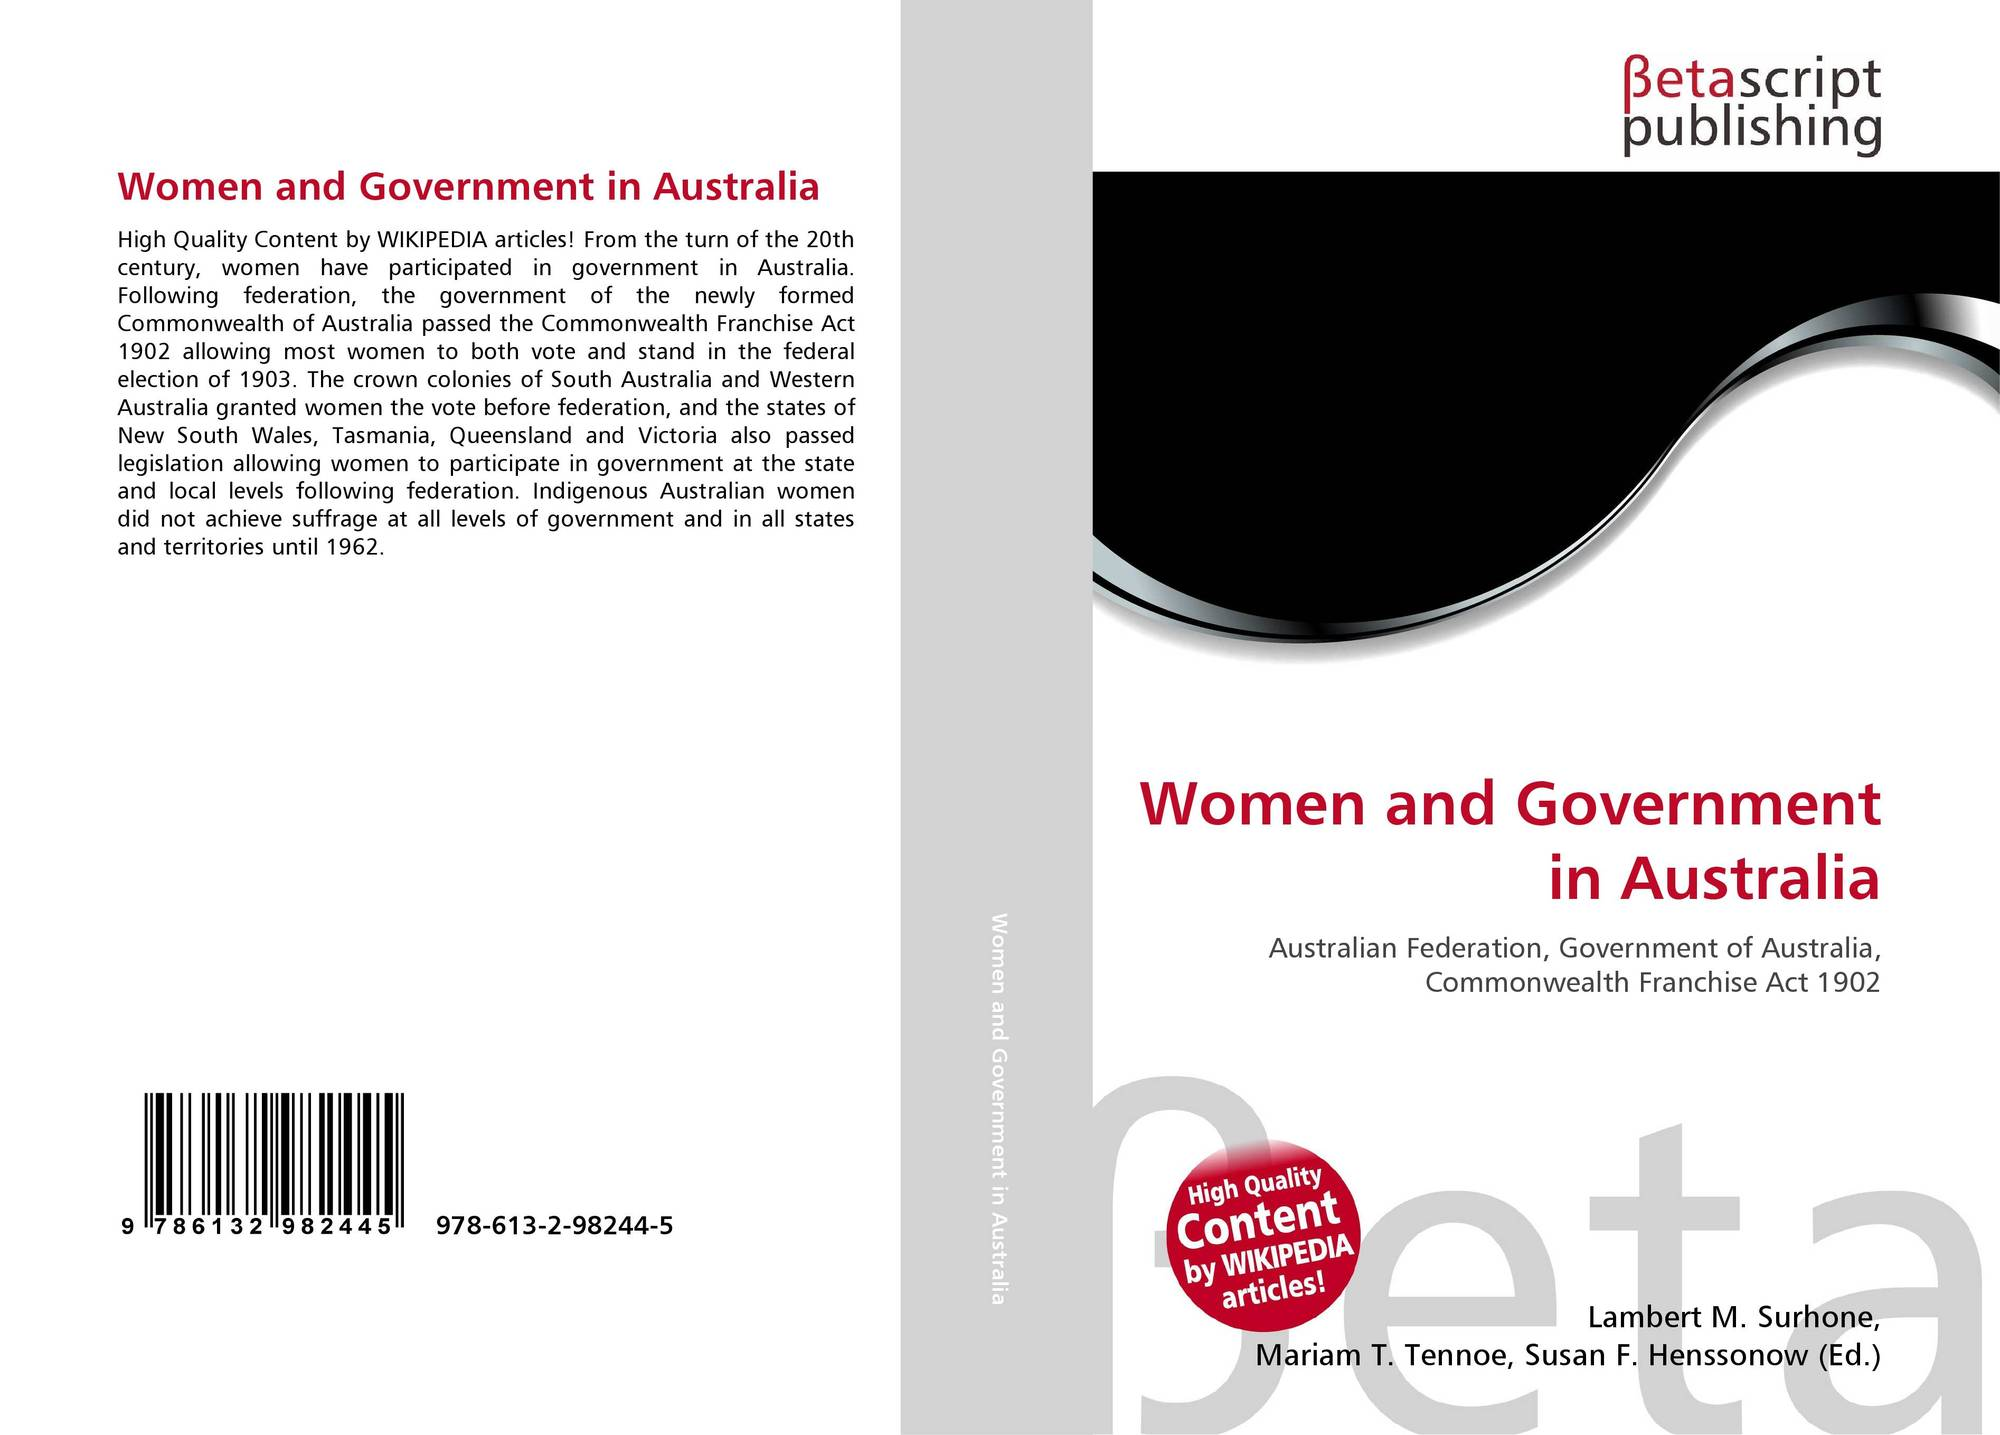 the local state and federal levels of government in australia